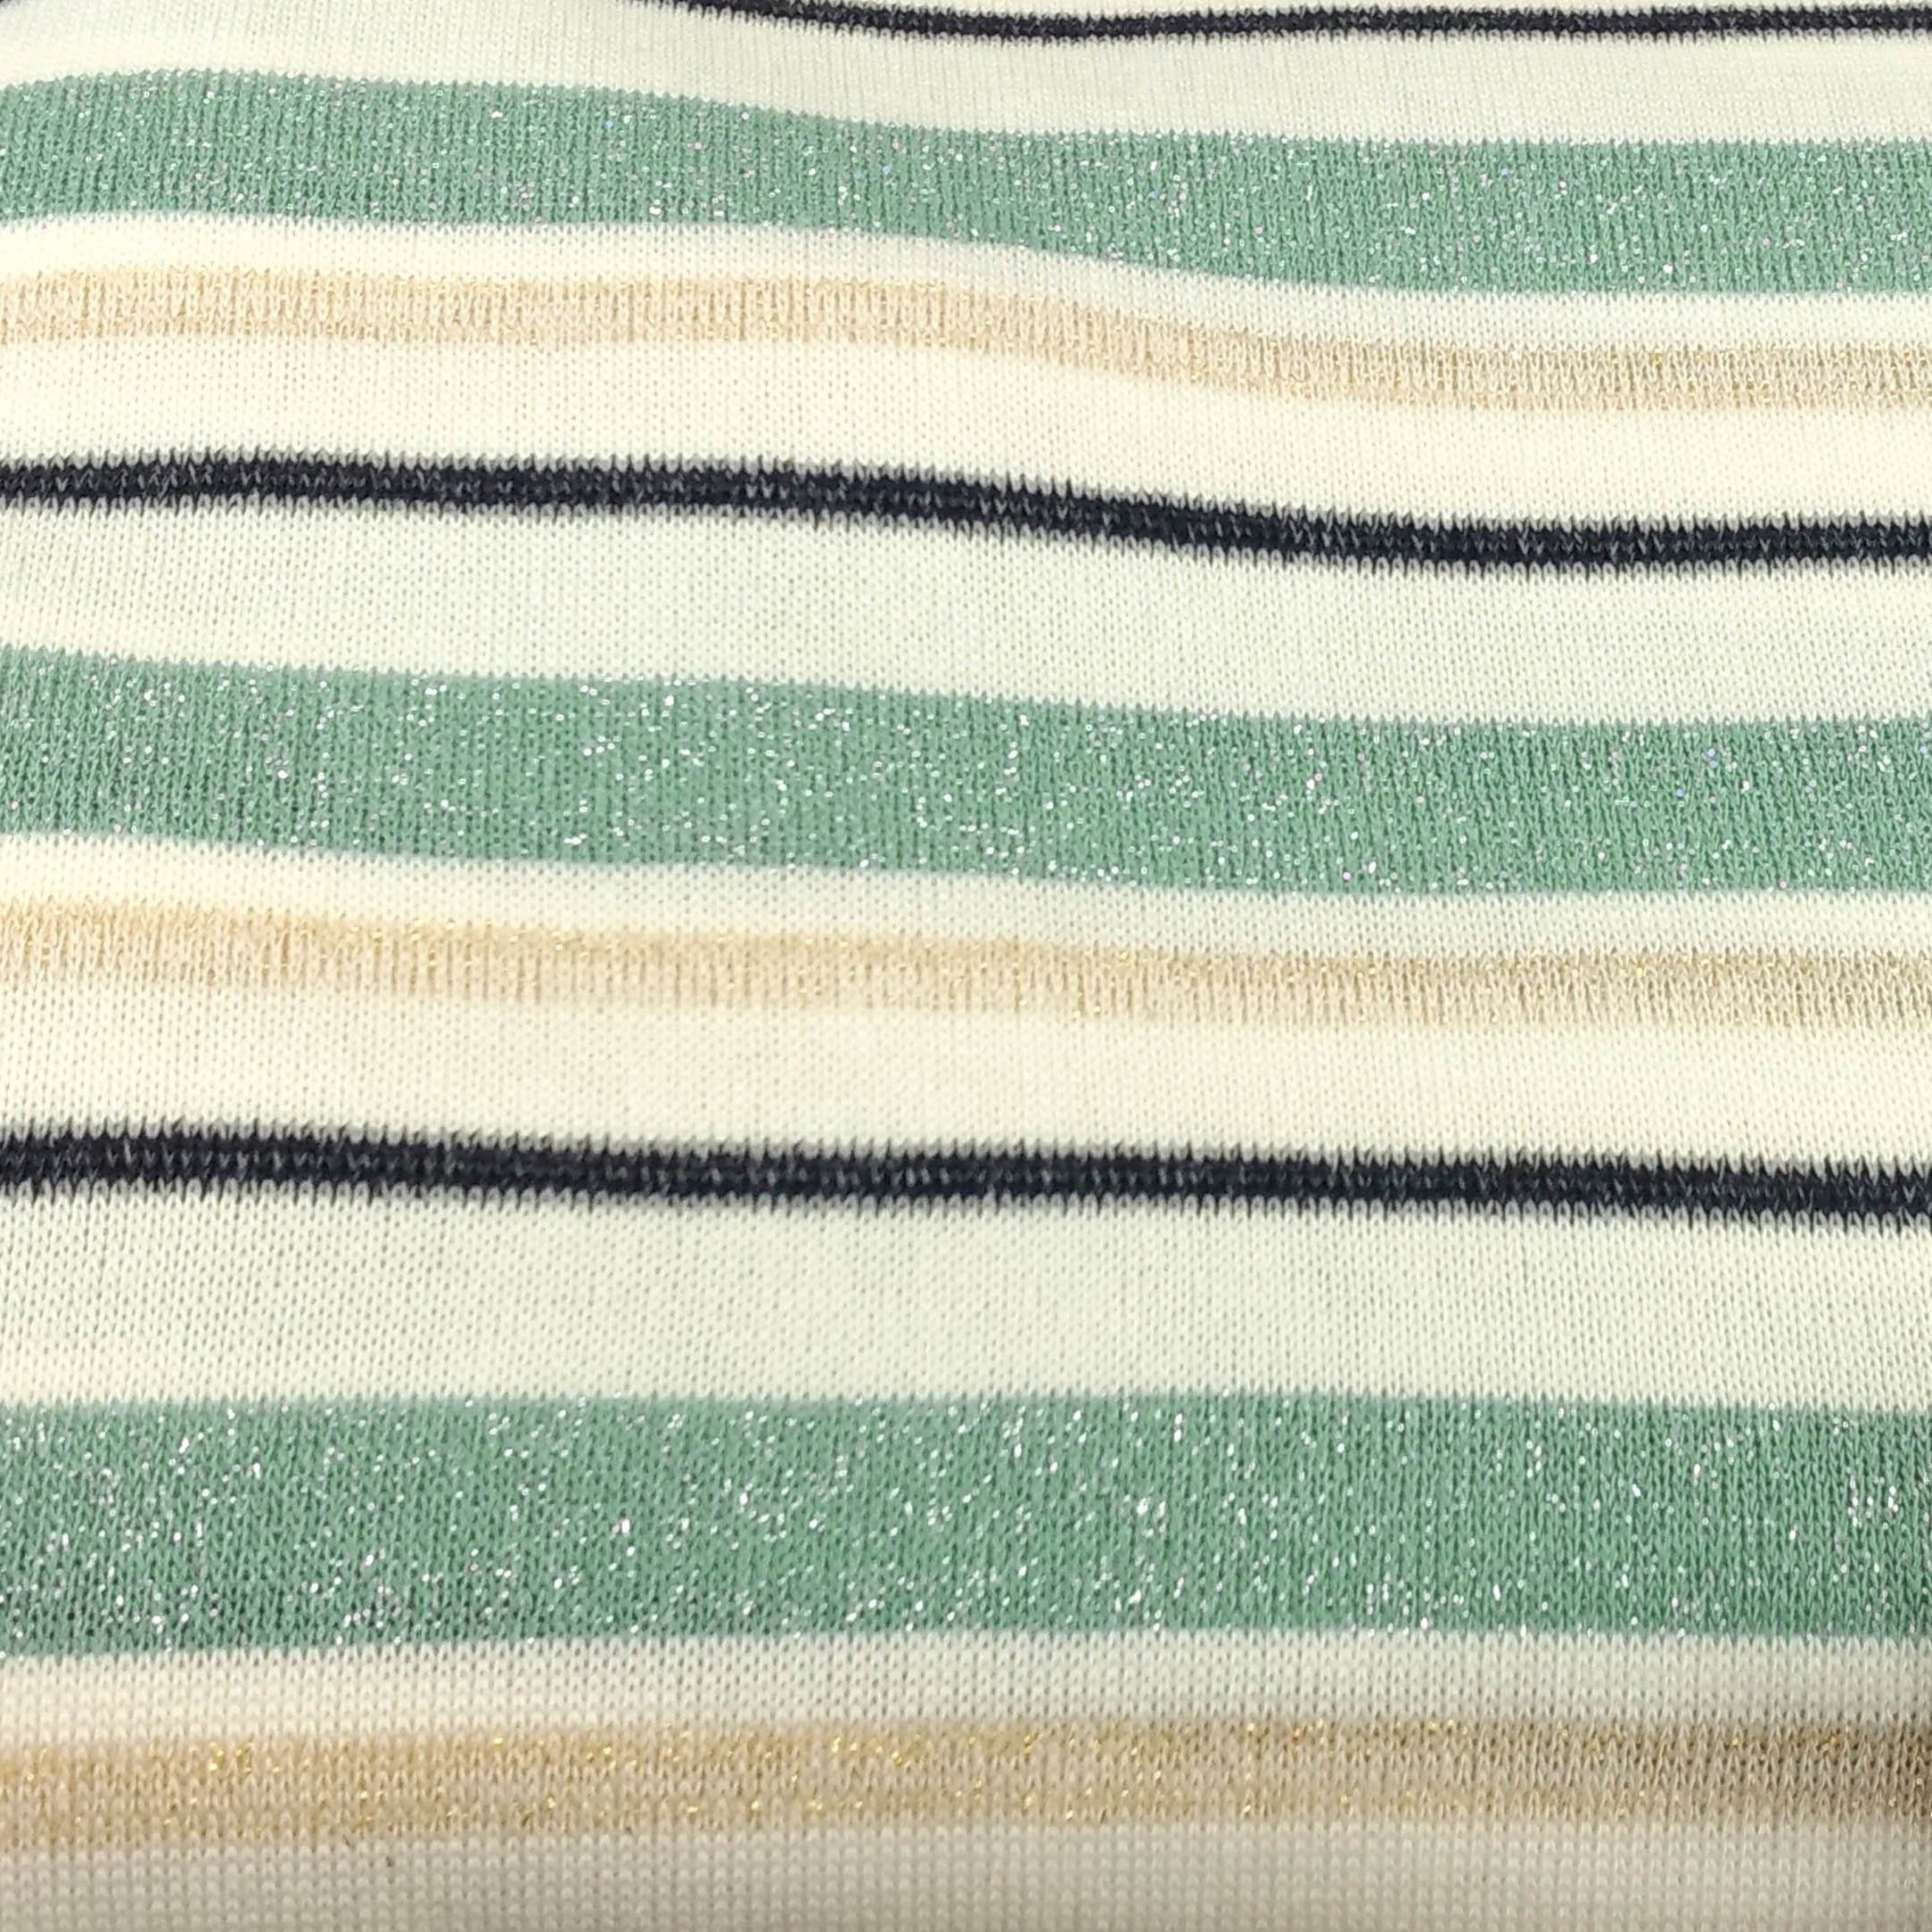 Dusty Teal Stripe - Lurex Hacci - By The Yard